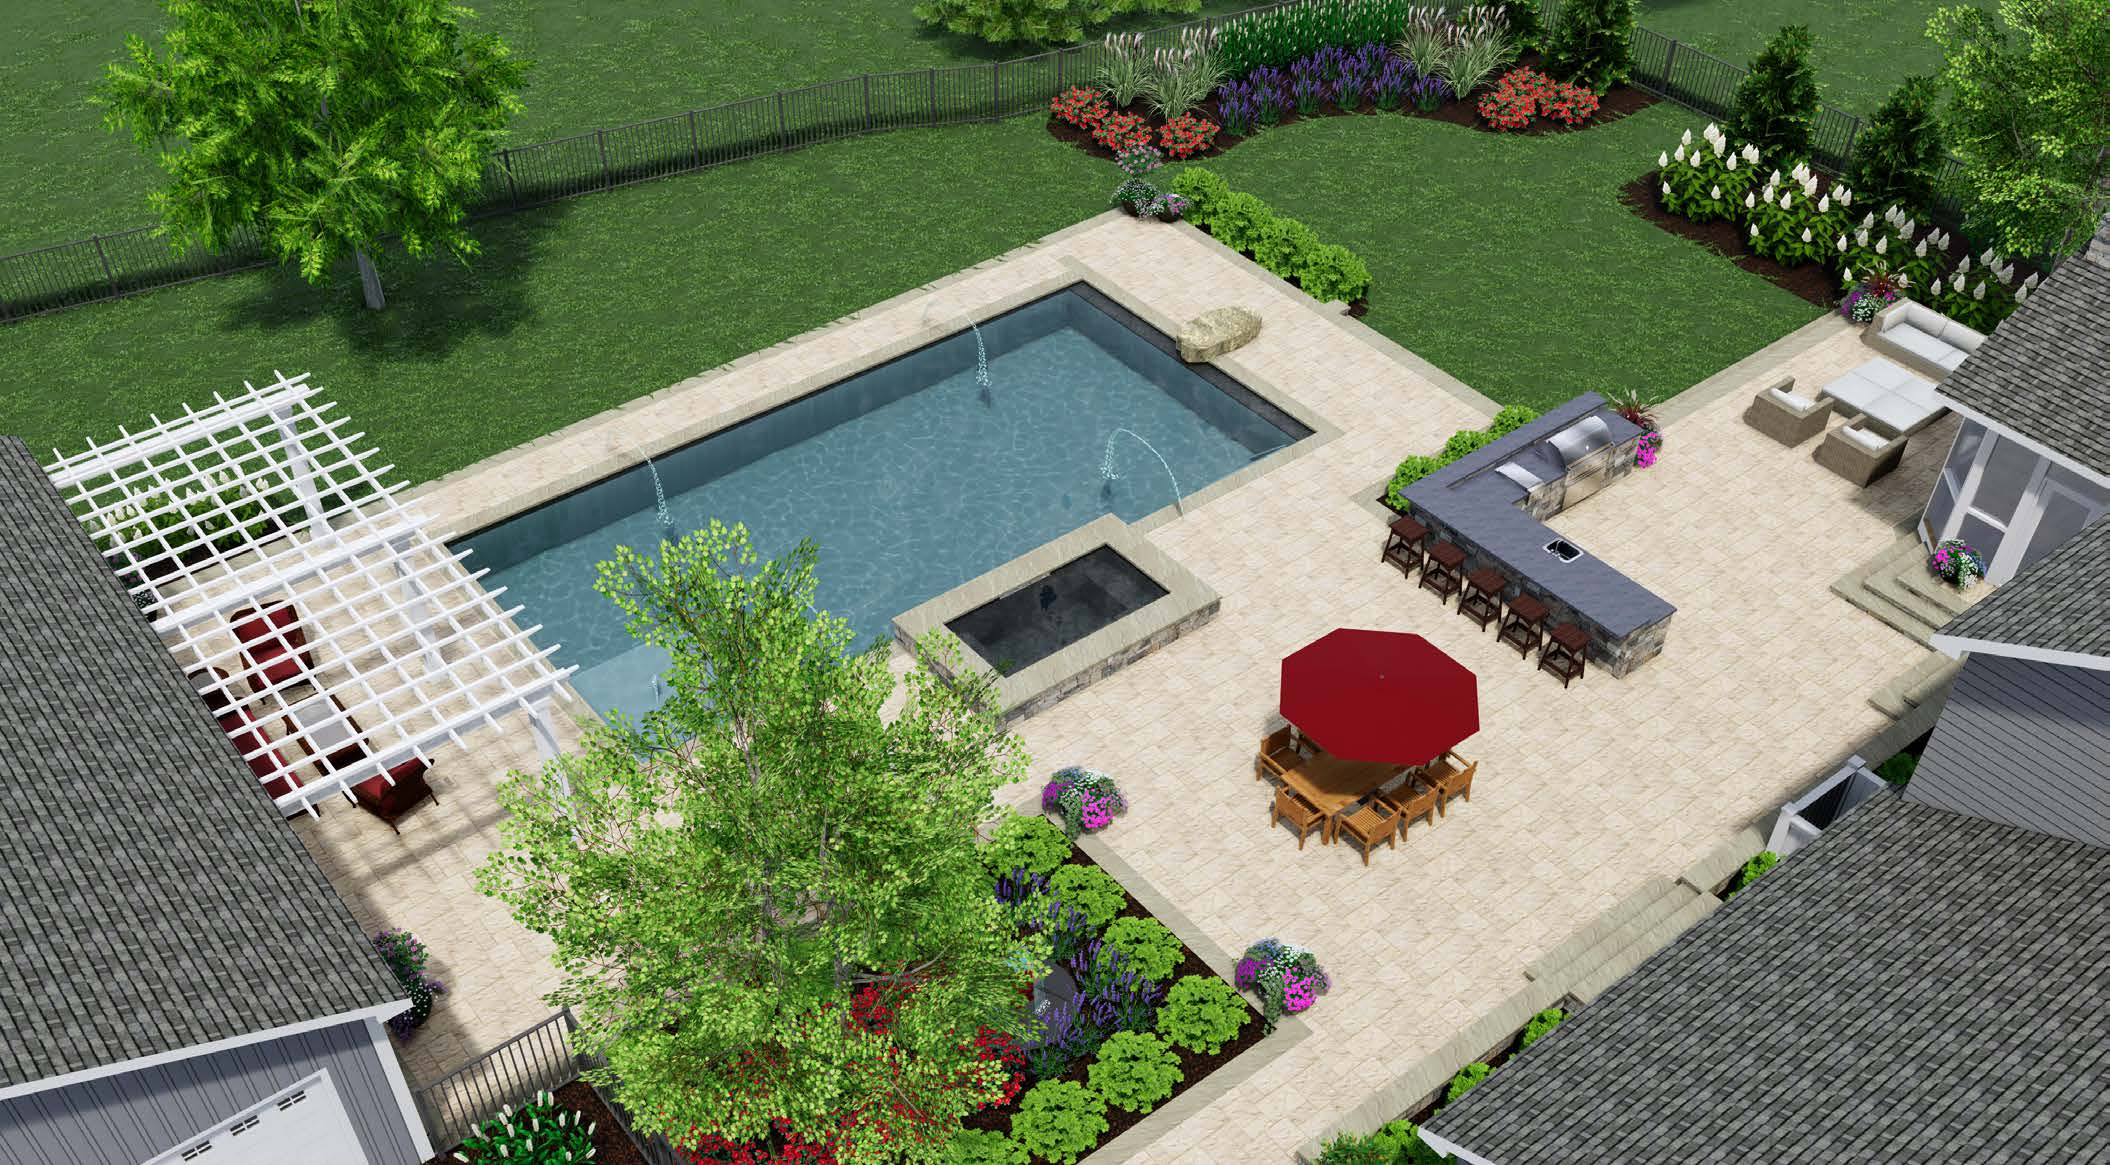 A Look at the Permit Process When Building an Inground Pool in Loudoun County, VA